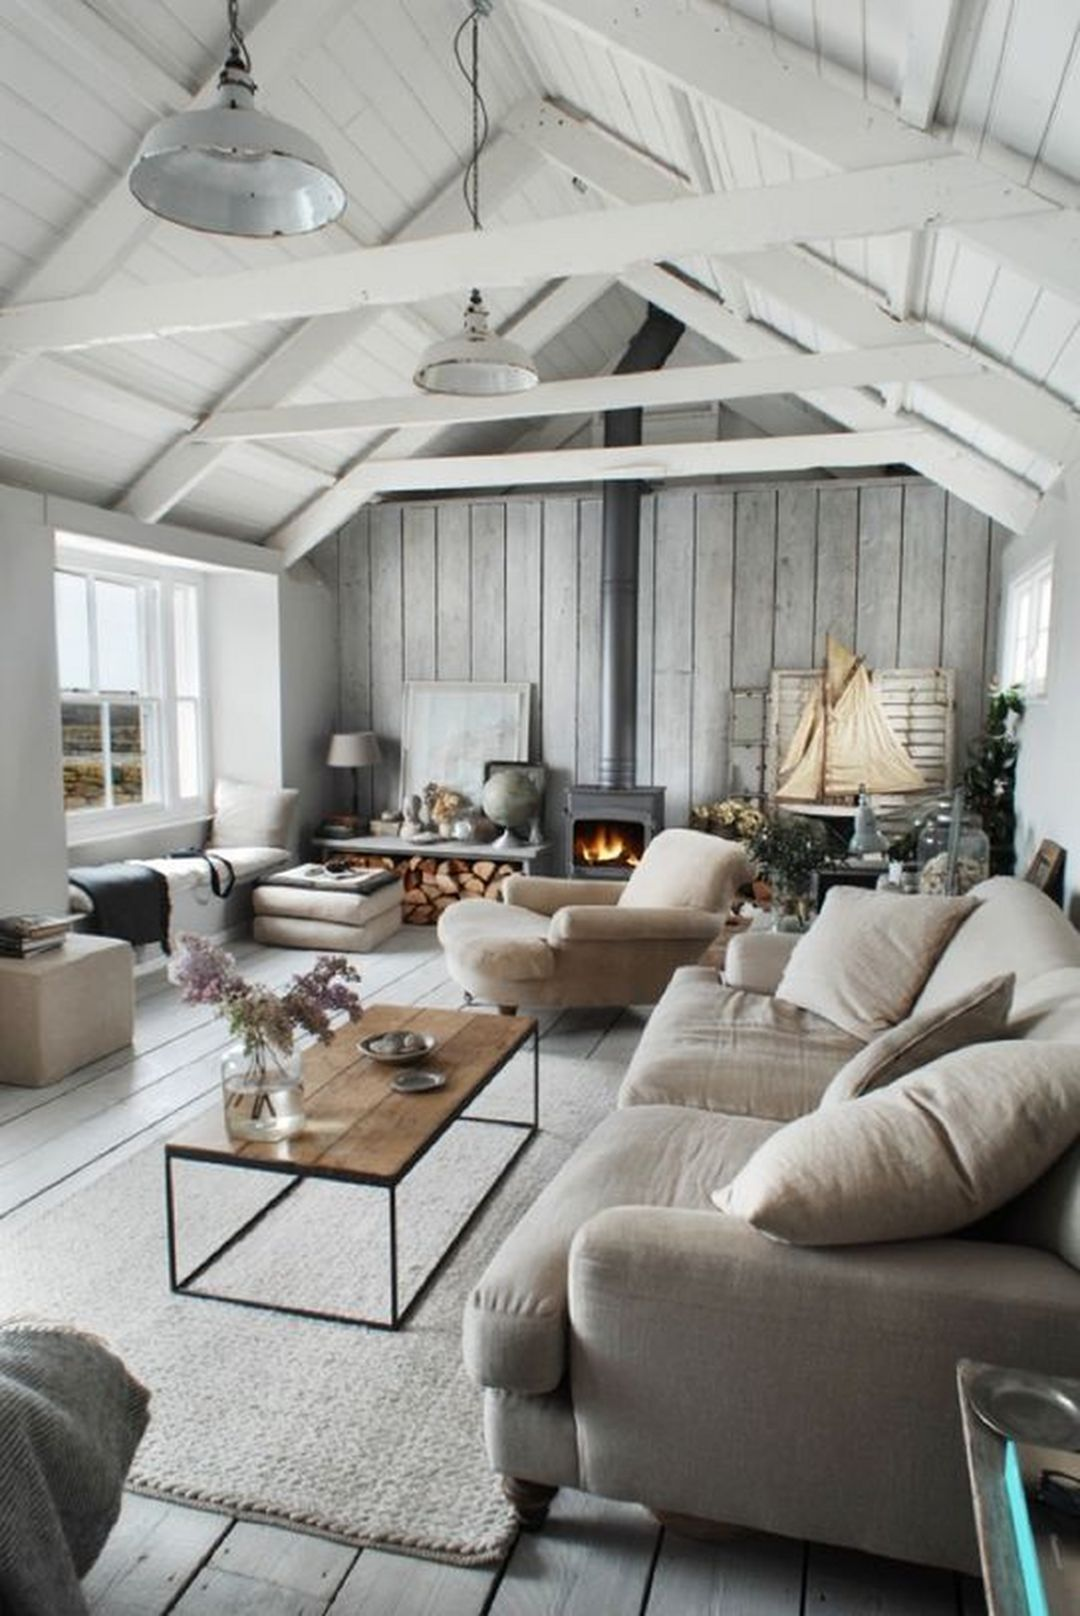 Cozy Romantic Living Room: 53+ Cozy And Romantic Living Room Ideas On A Budget (With